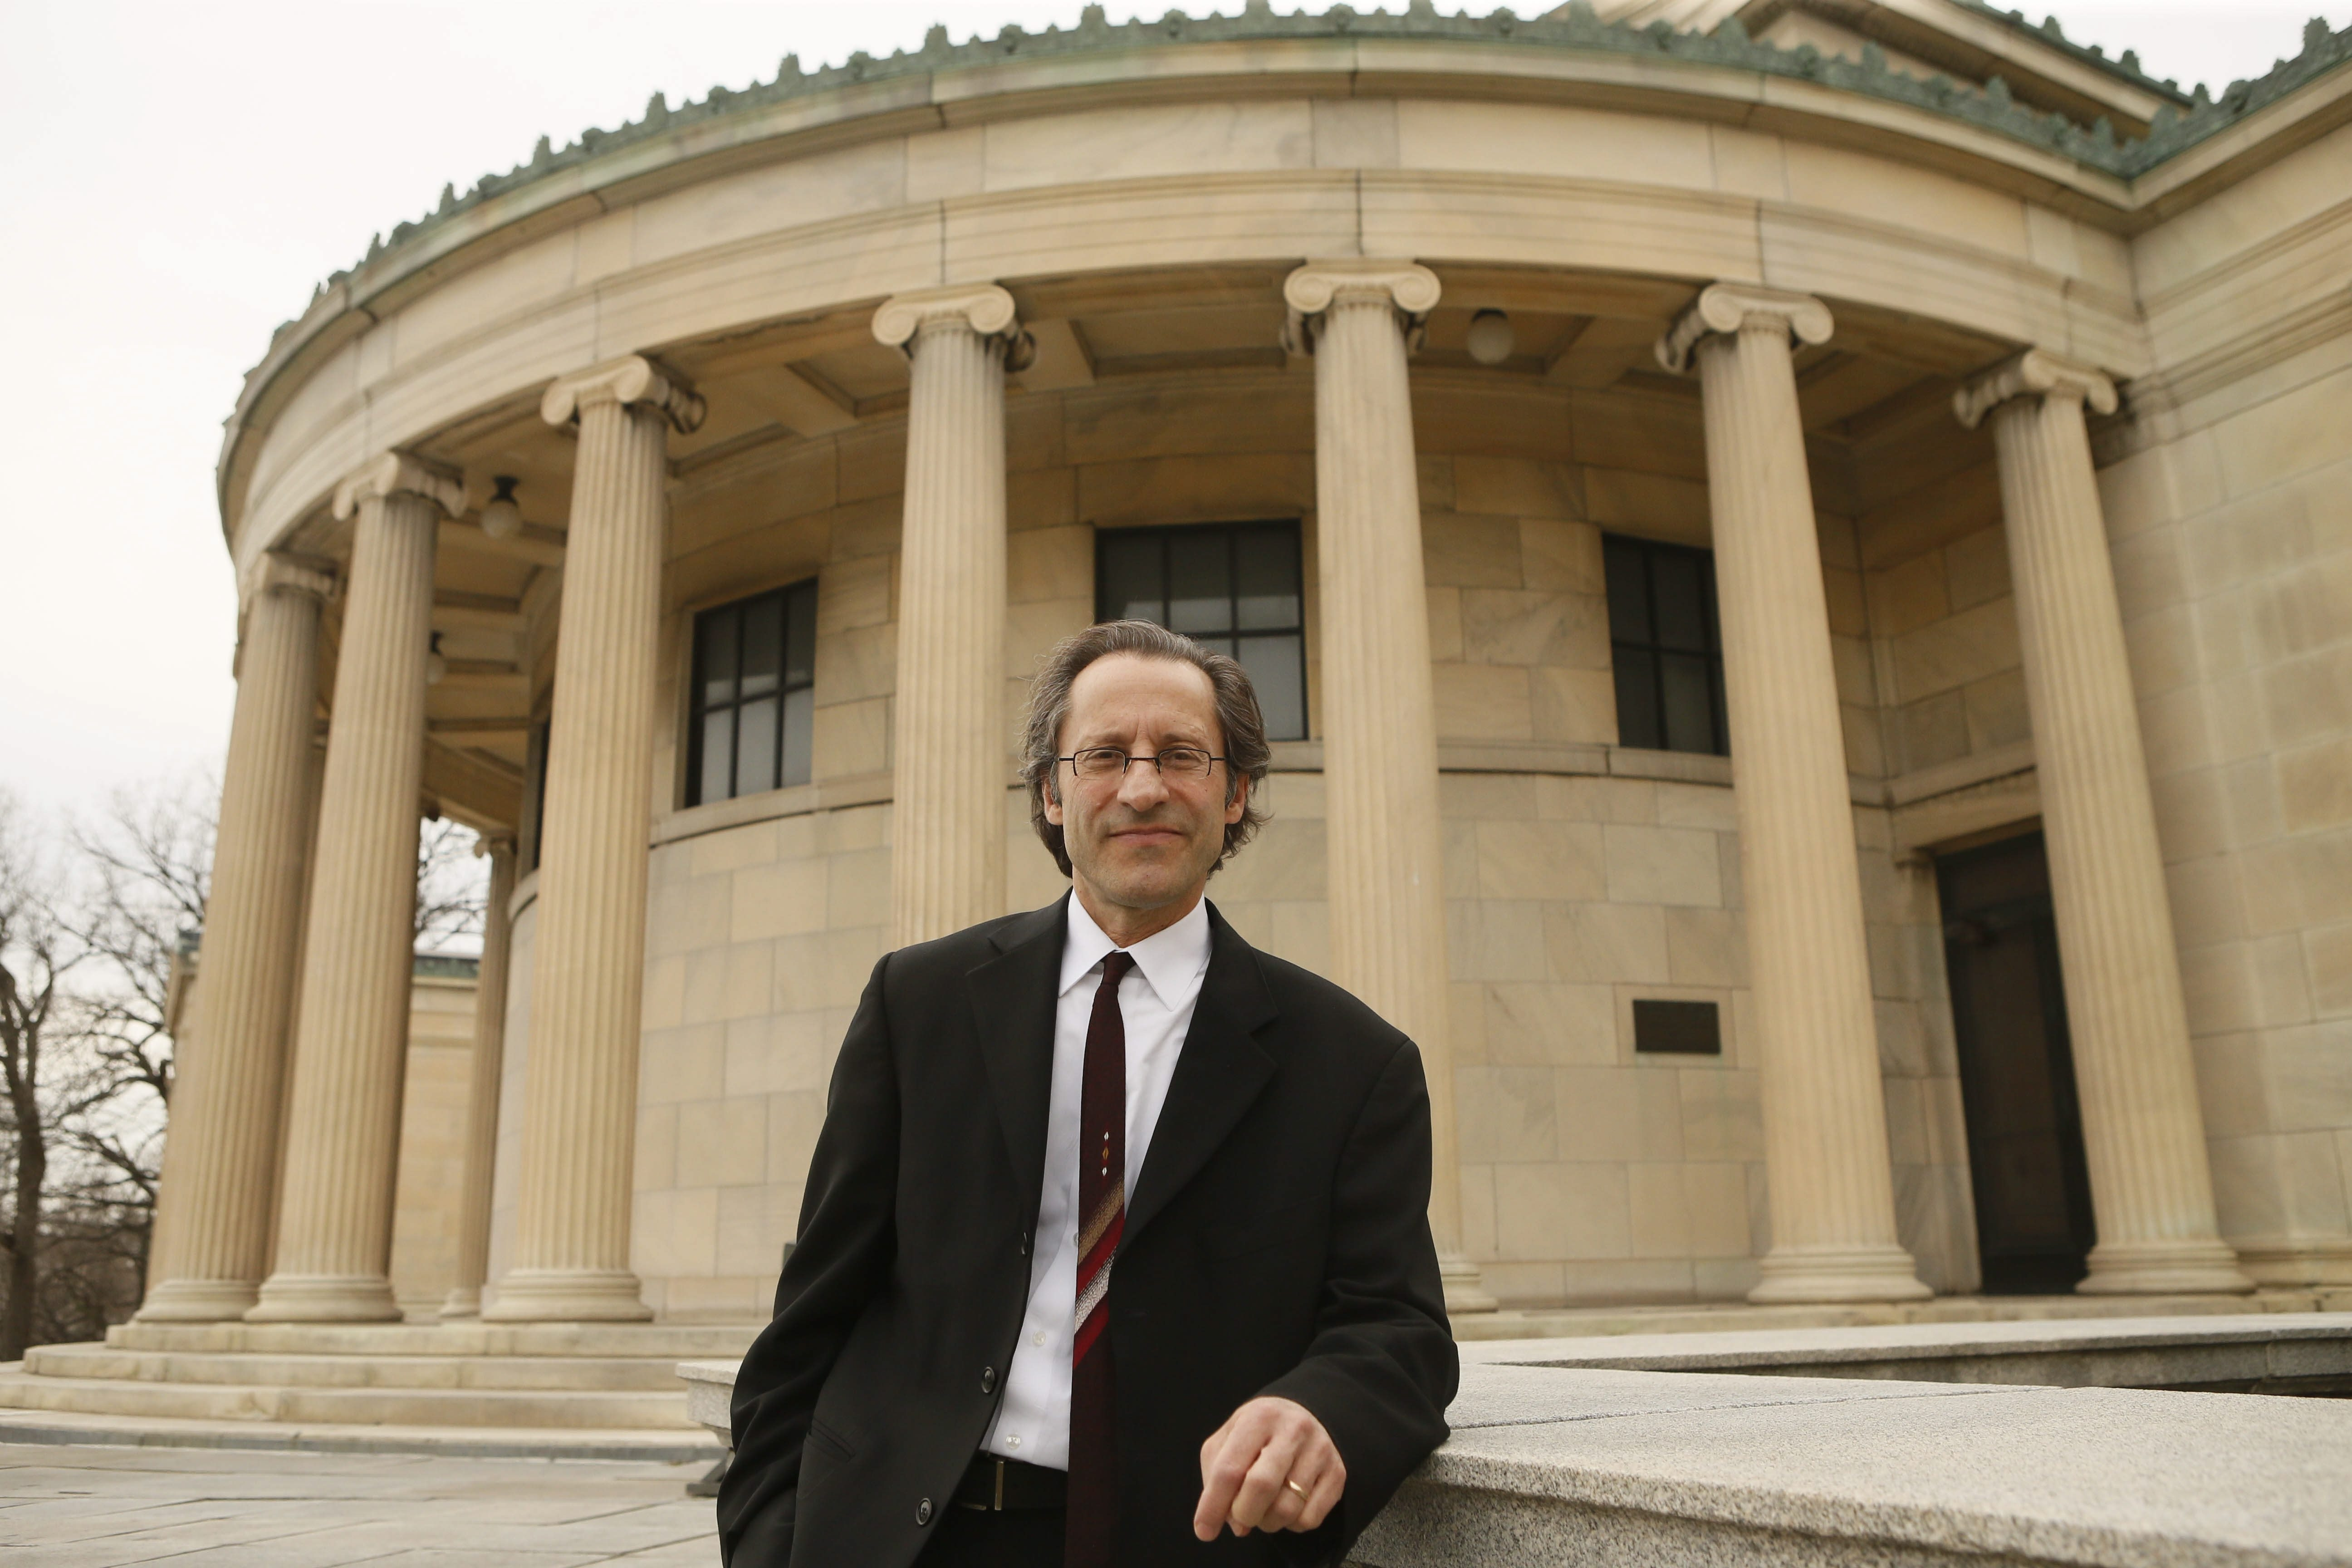 Douglas Dreishpoon, chief curator of the Albright-Knox Art Gallery, will be reducing his role at the gallery when he becomes curator emeritus.